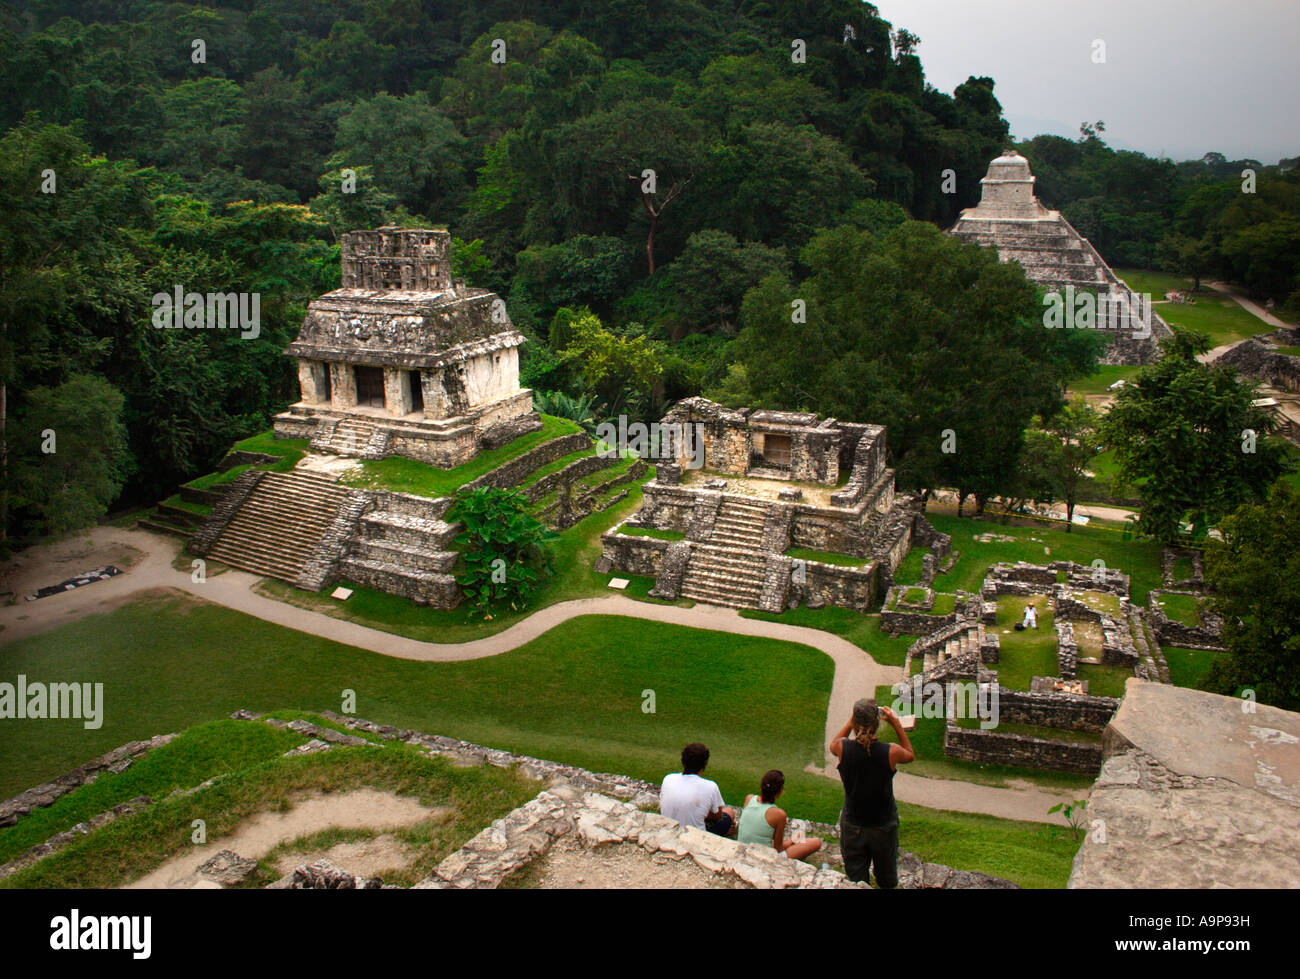 Palenque, Cross group Temples, Mayan archaeological ruin, Chiapas, Mexico - Stock Image